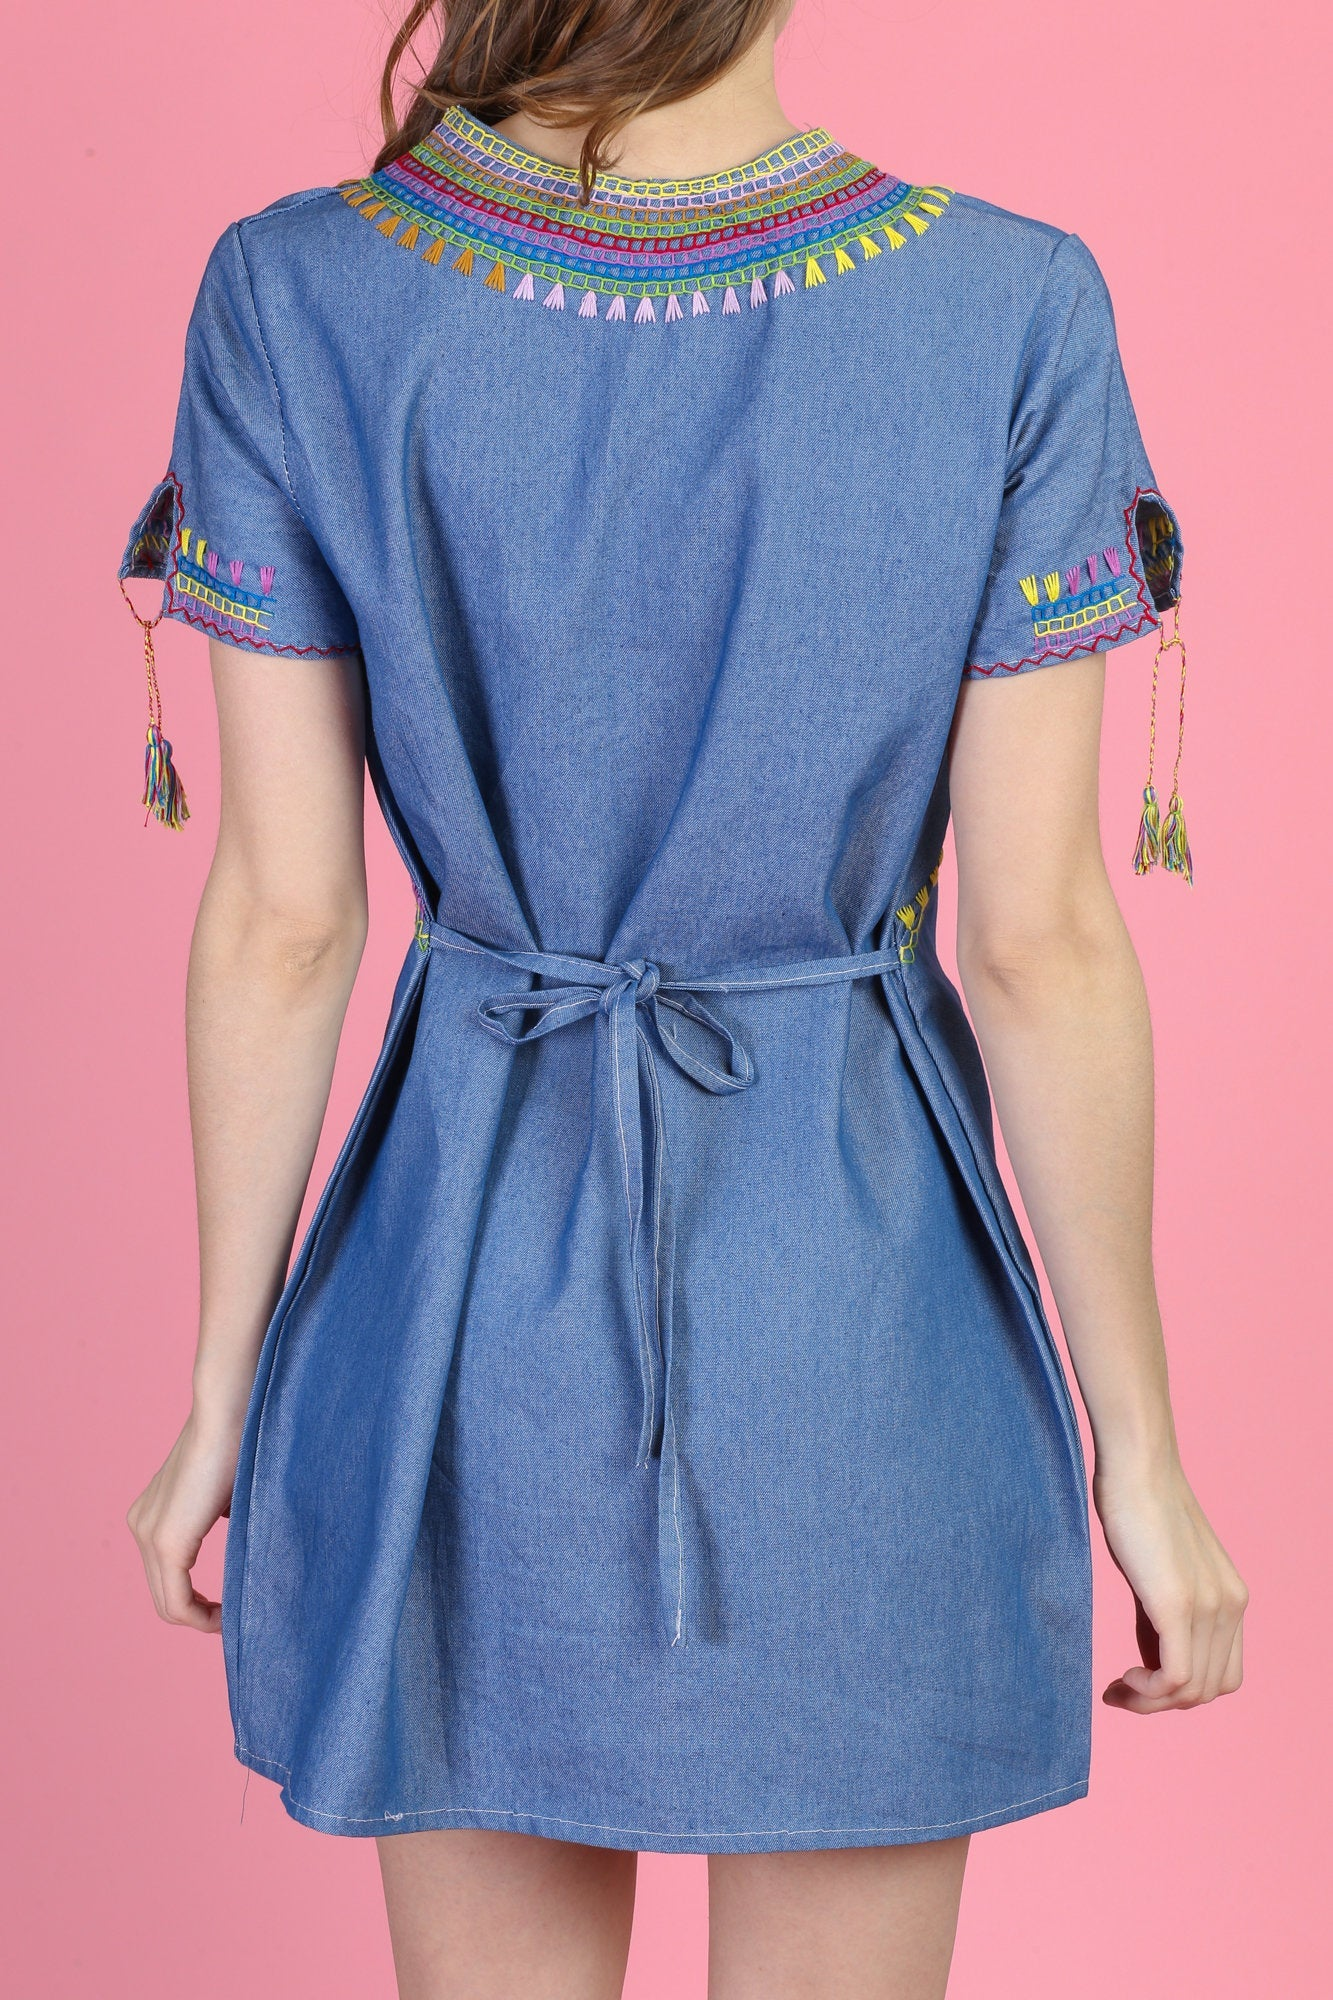 Vintage Embroidered Chambray Hippie Mini Dress - Medium